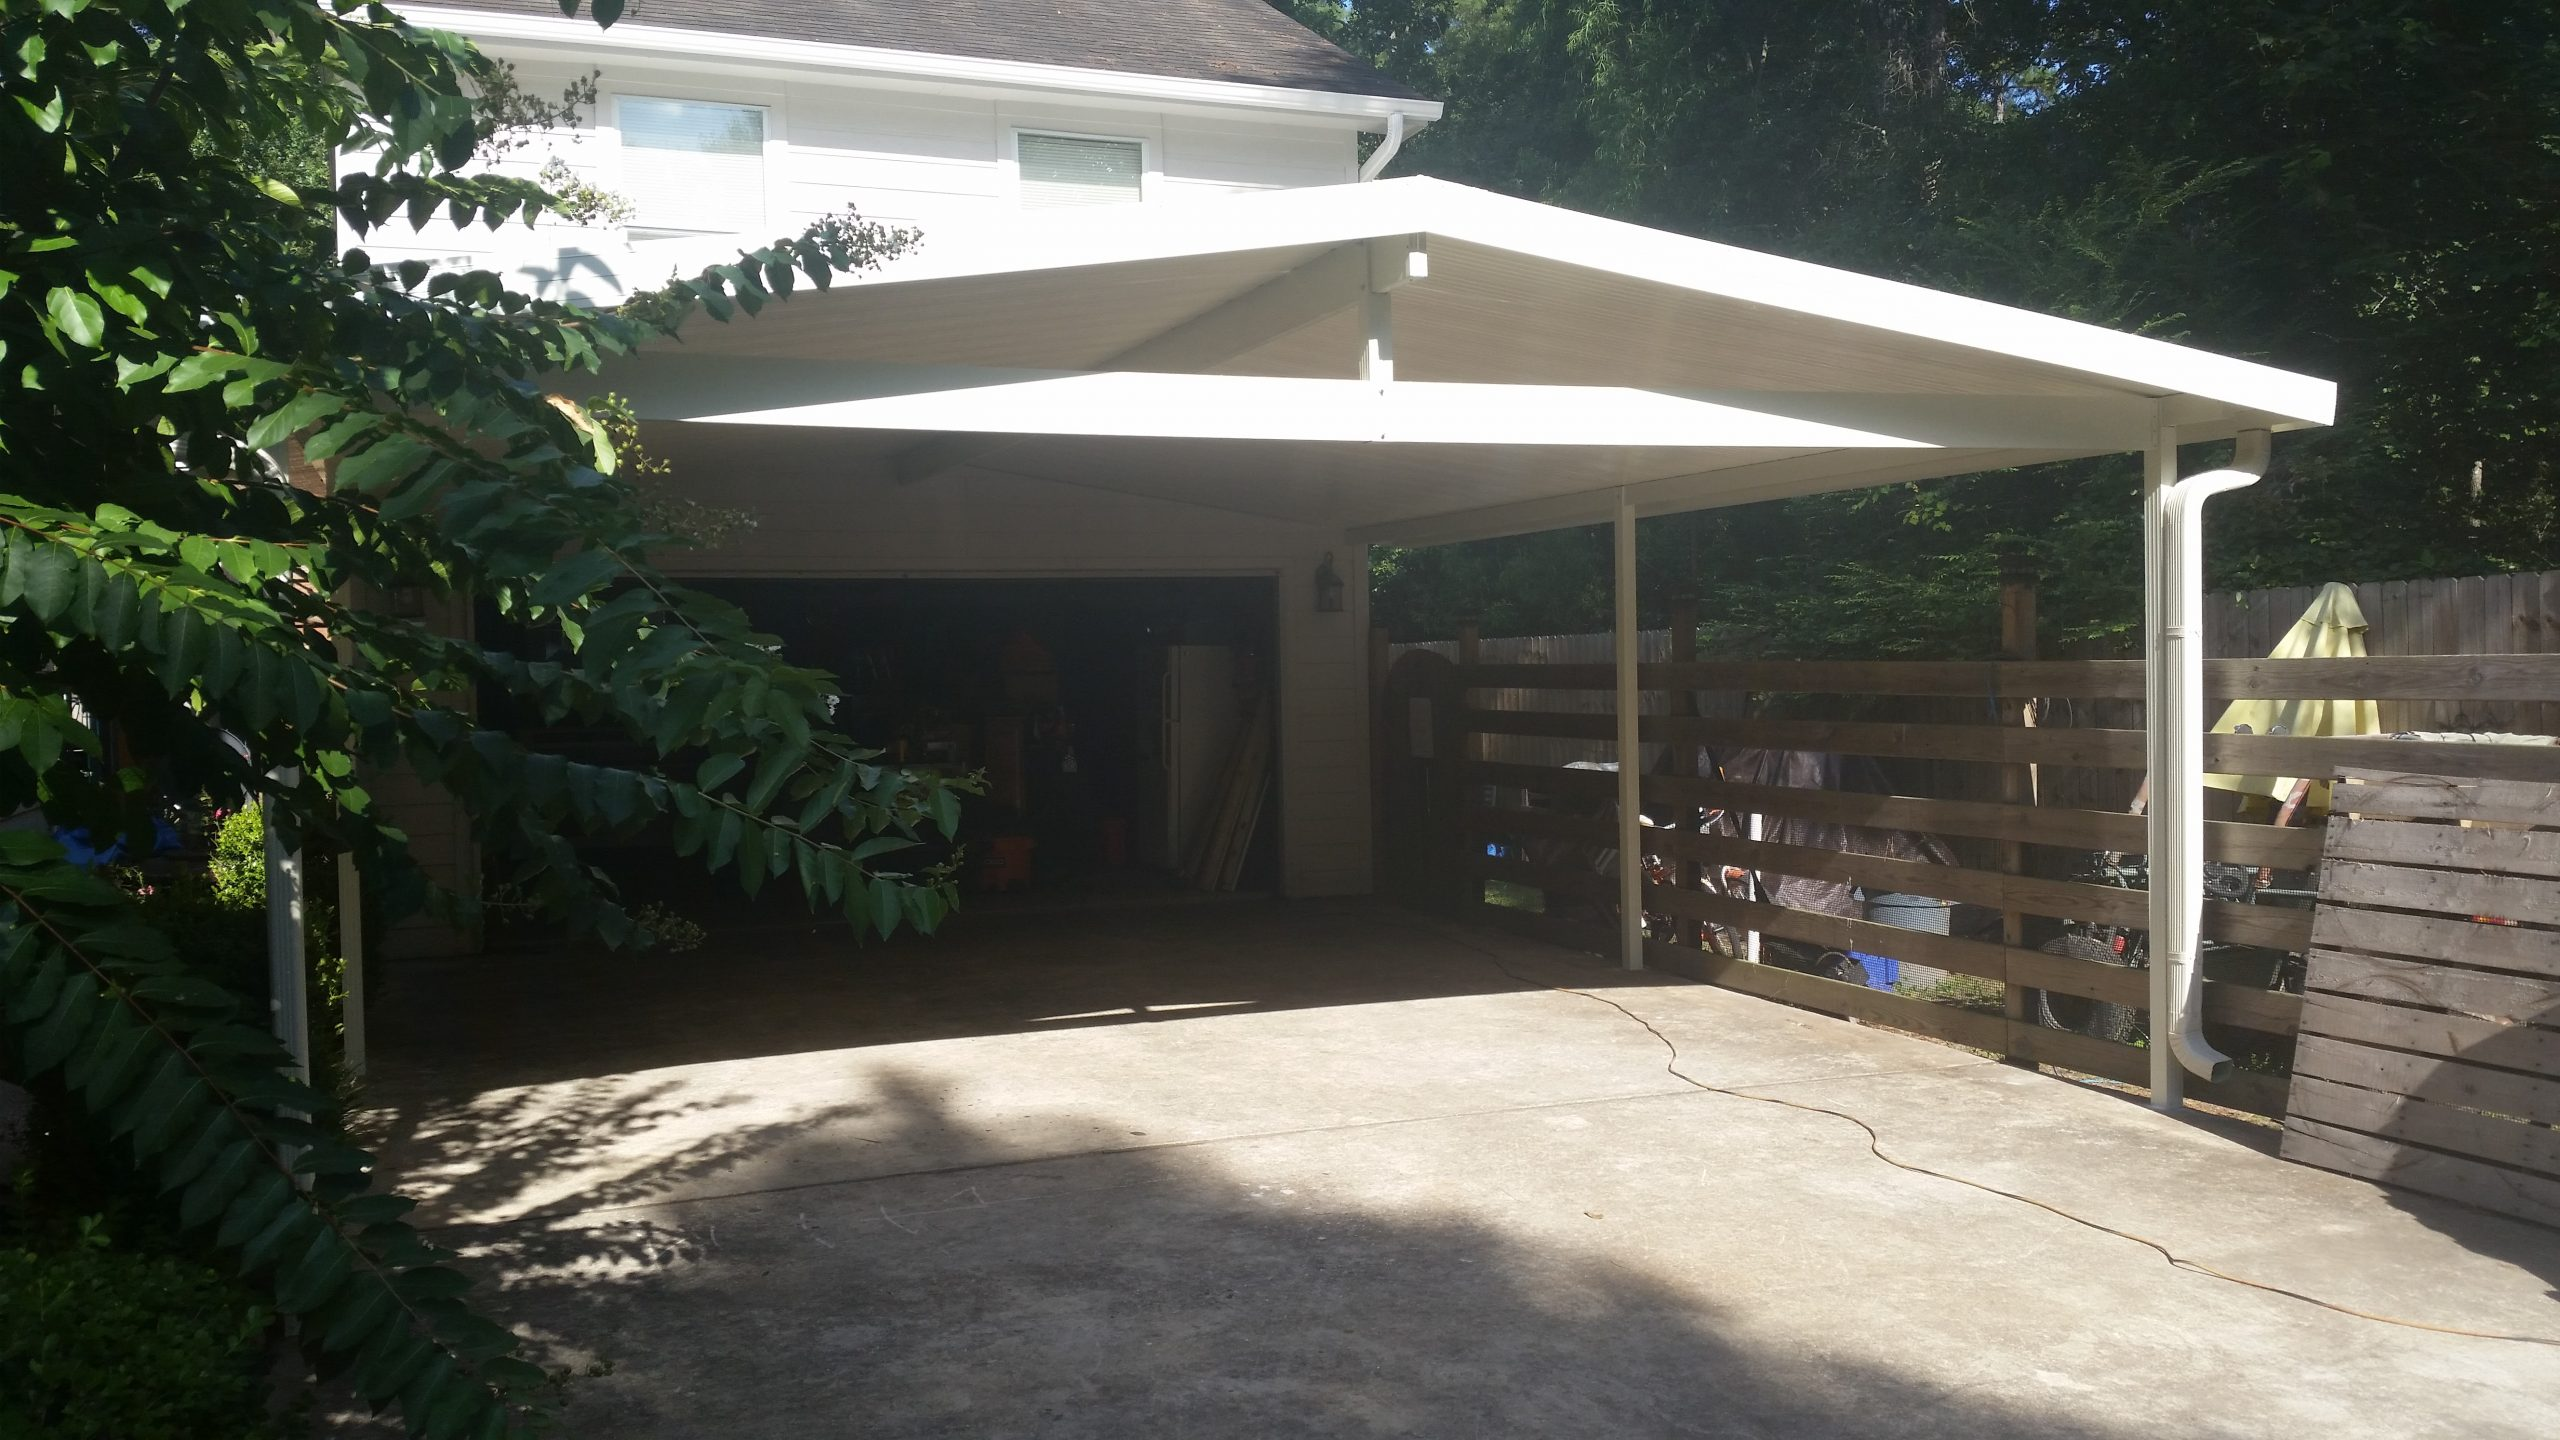 Arched Carport Cover in white